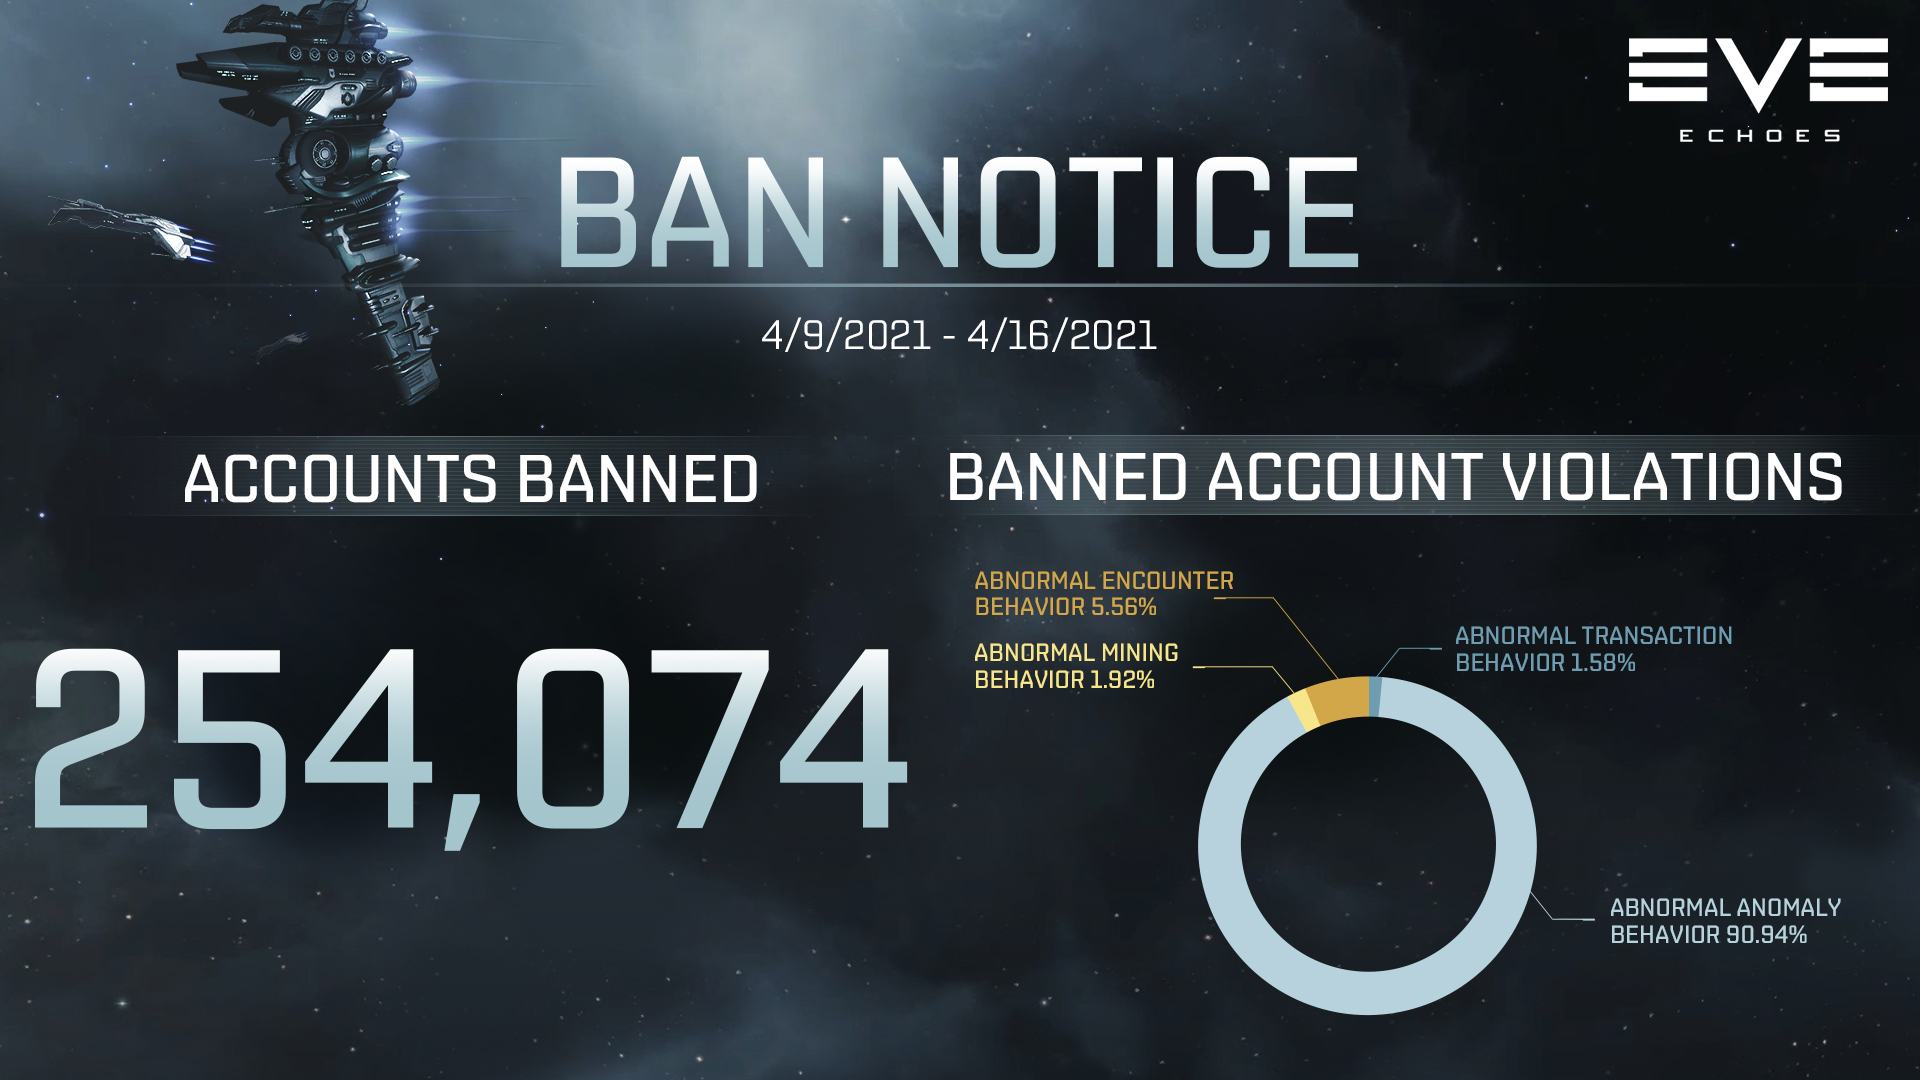 Ban Notice for 04/09-04/16